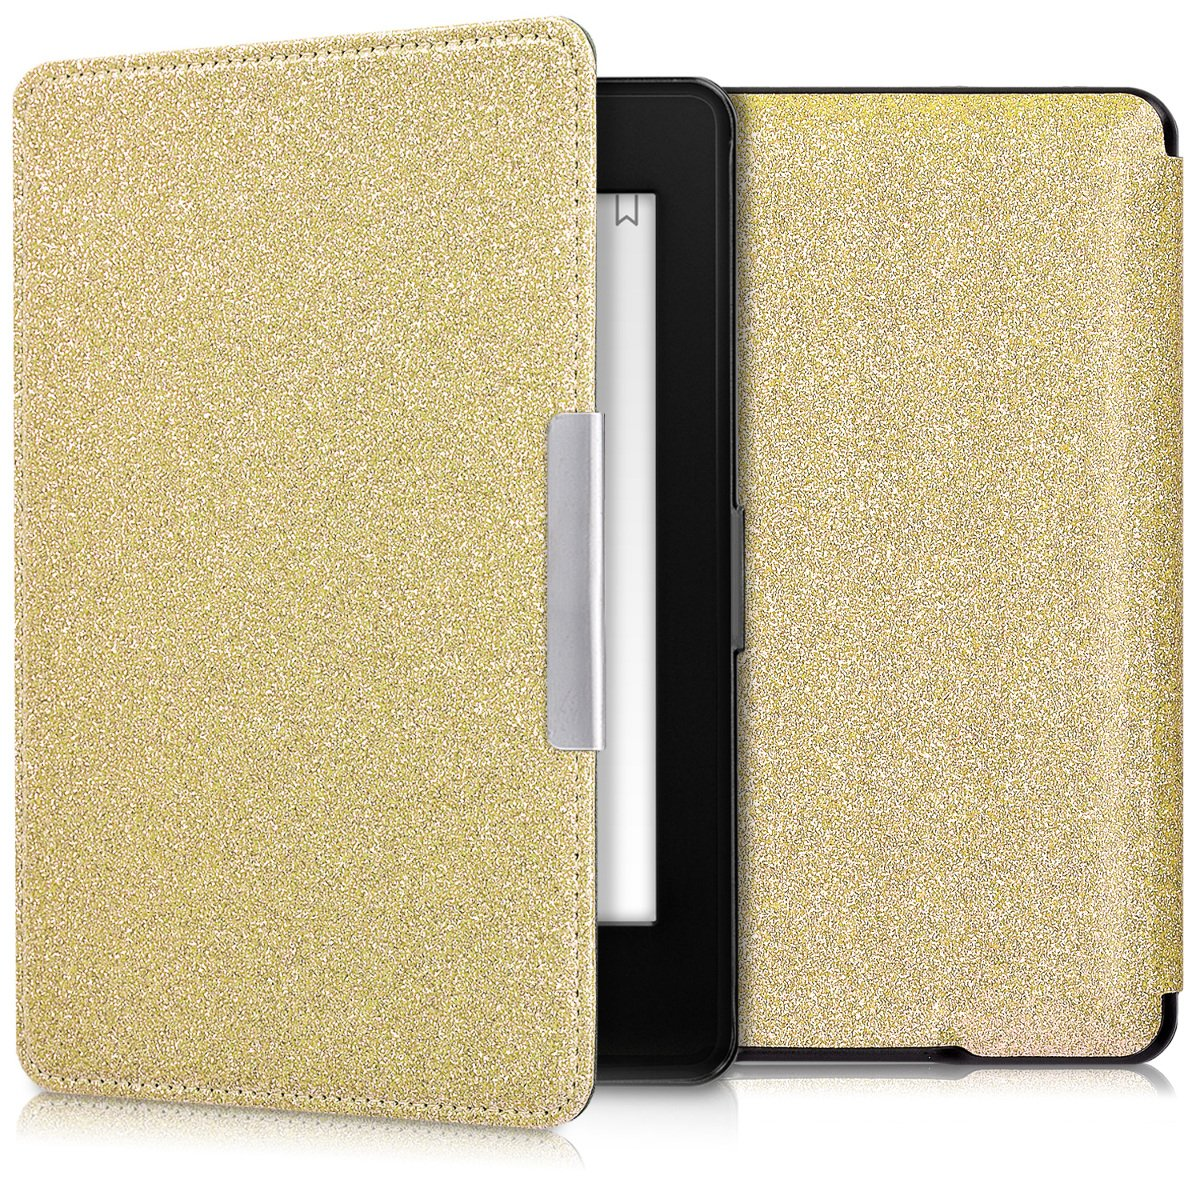 kwmobile Case for Amazon Kindle Paperwhite - Book Style Protective e-Reader Flip Cover Folio Case Shell - gold